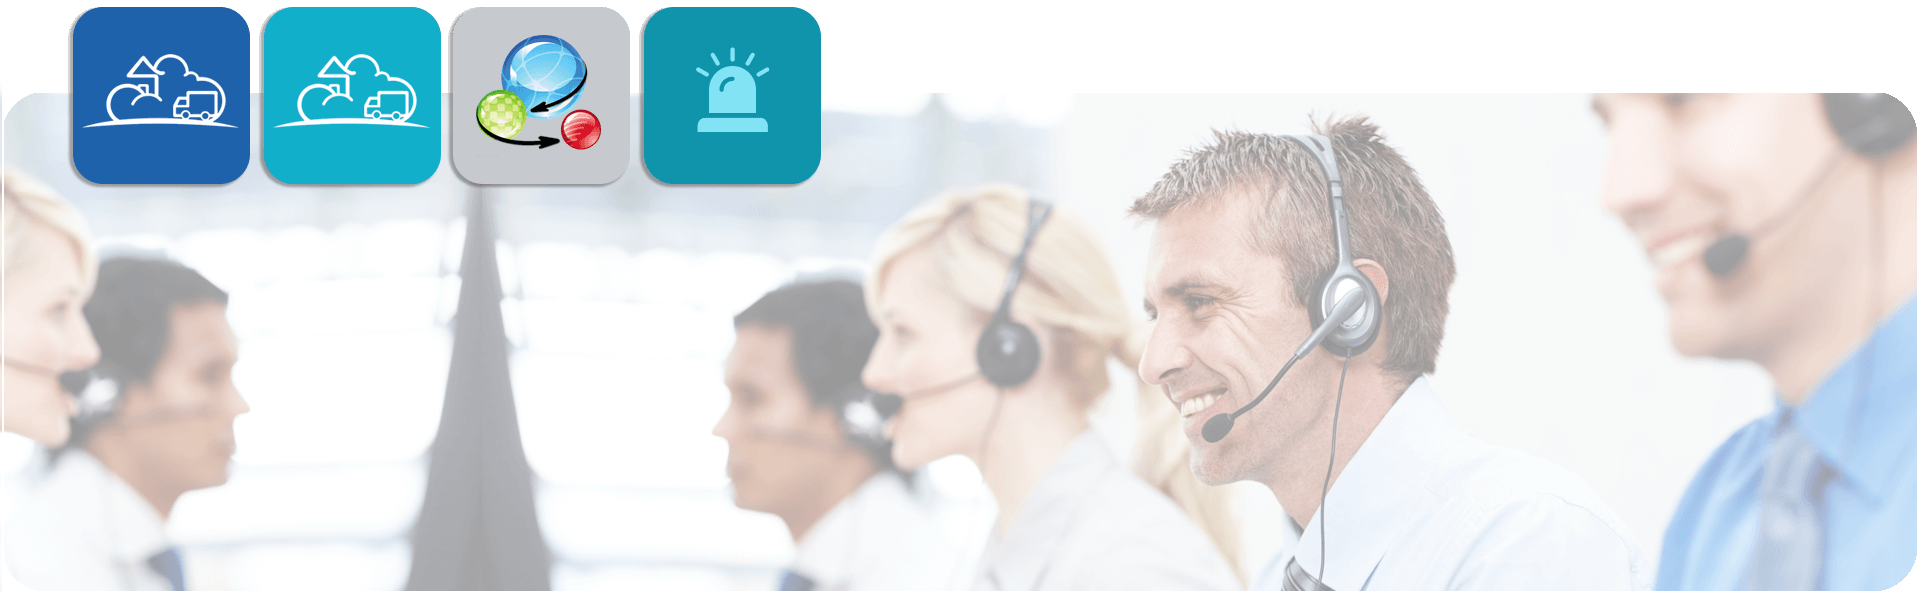 call centre staff wearing headsets